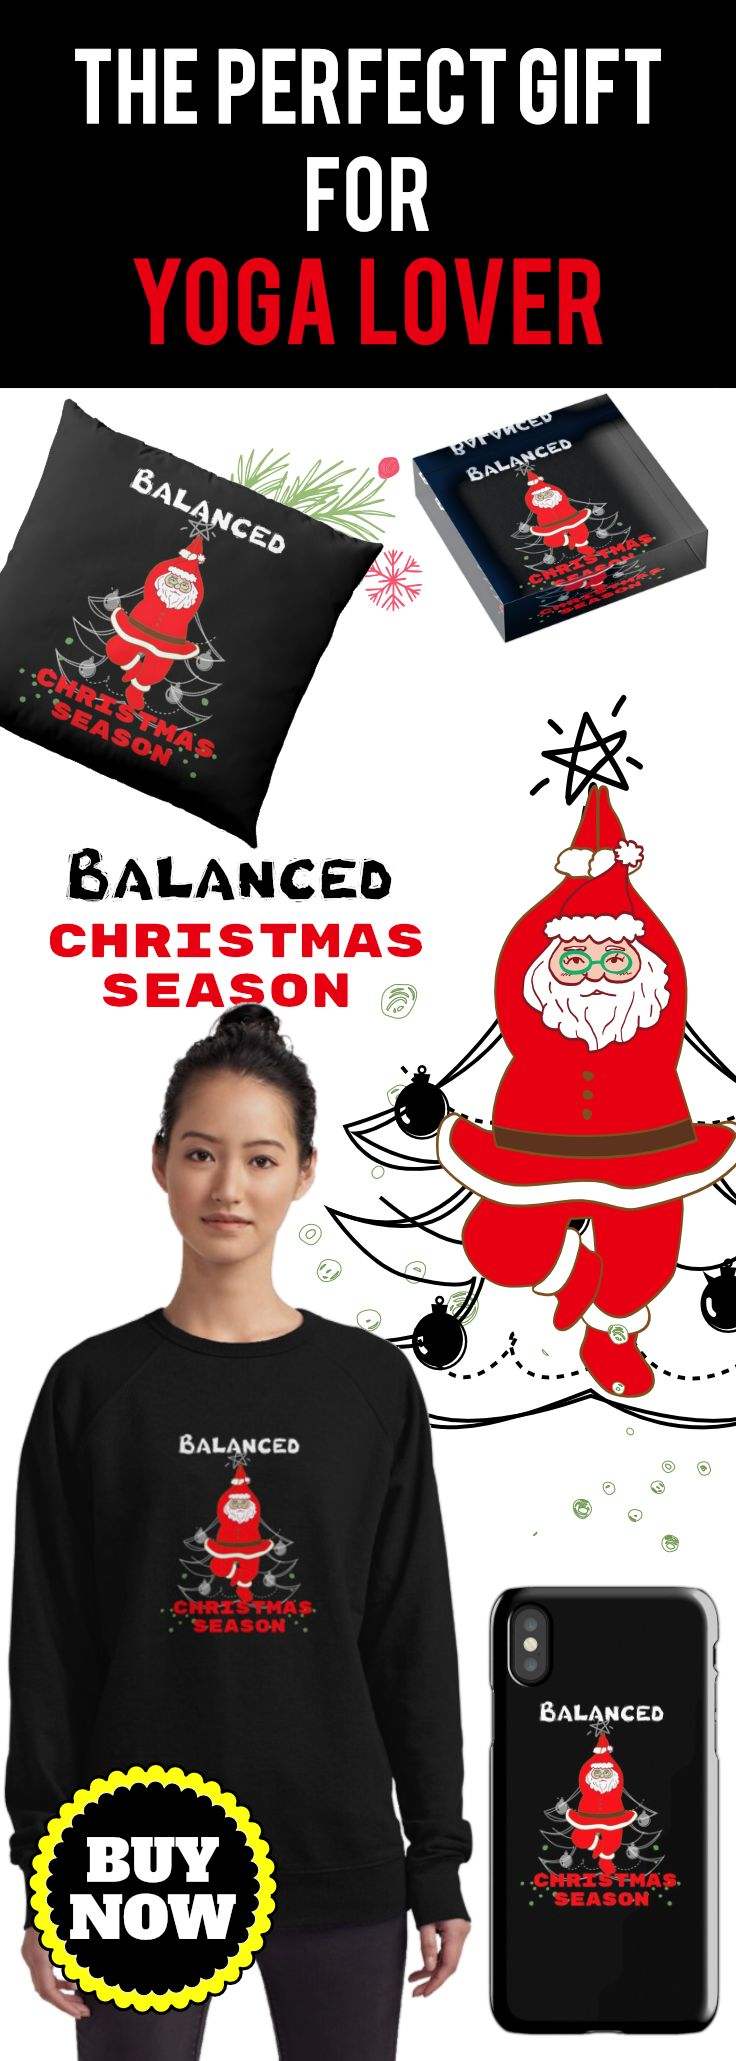 Yoga Funny Santa Claus Balanced Christmas Season. The Best Way To Spread Christmas Cheers. Check here for your next sweater to wear to an ugly Christmas sweater party. Great gifts selection for this Christmas season! # Yoga Lover # Christmas gifts # For Mom # Funny # Santa Claus